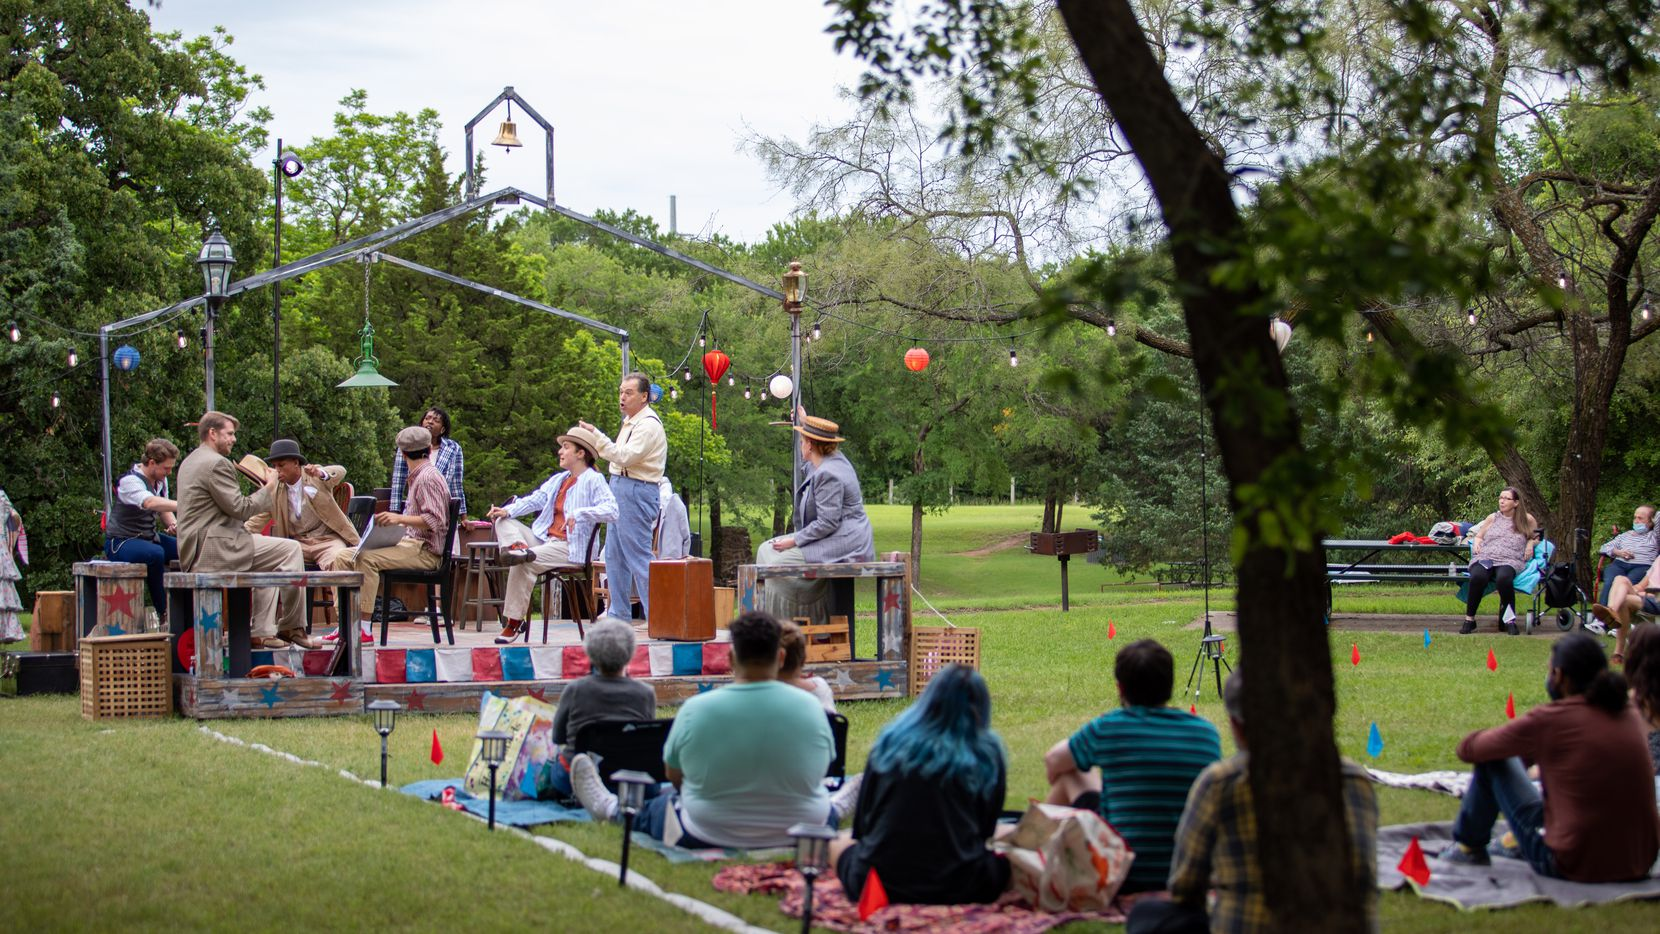 Theatre Three is taking its stripped-down, straw-hat-and-suitcase version of 'The Music Man' to three different outdoor locations around Dallas. Pictured here is the final dress rehearsal on June 2 at the Coppell Senior Center.